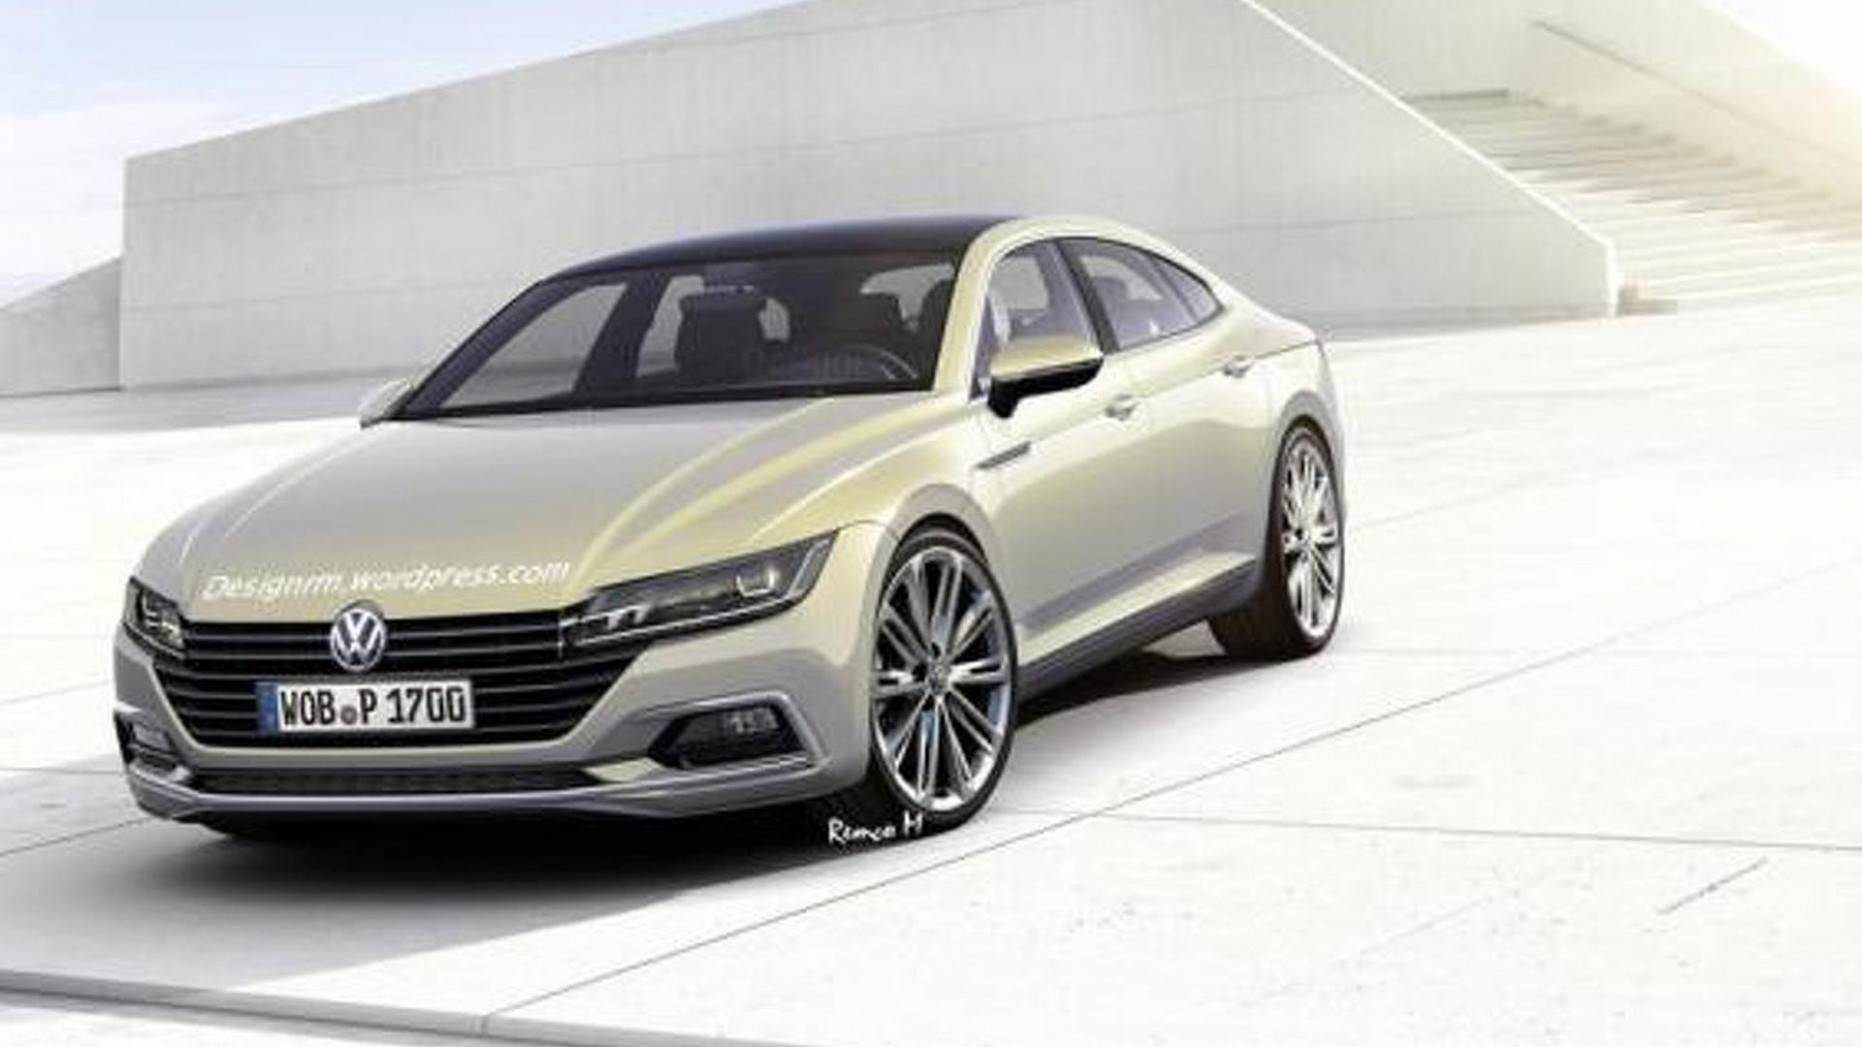 New Concept Next Generation Vw Cc